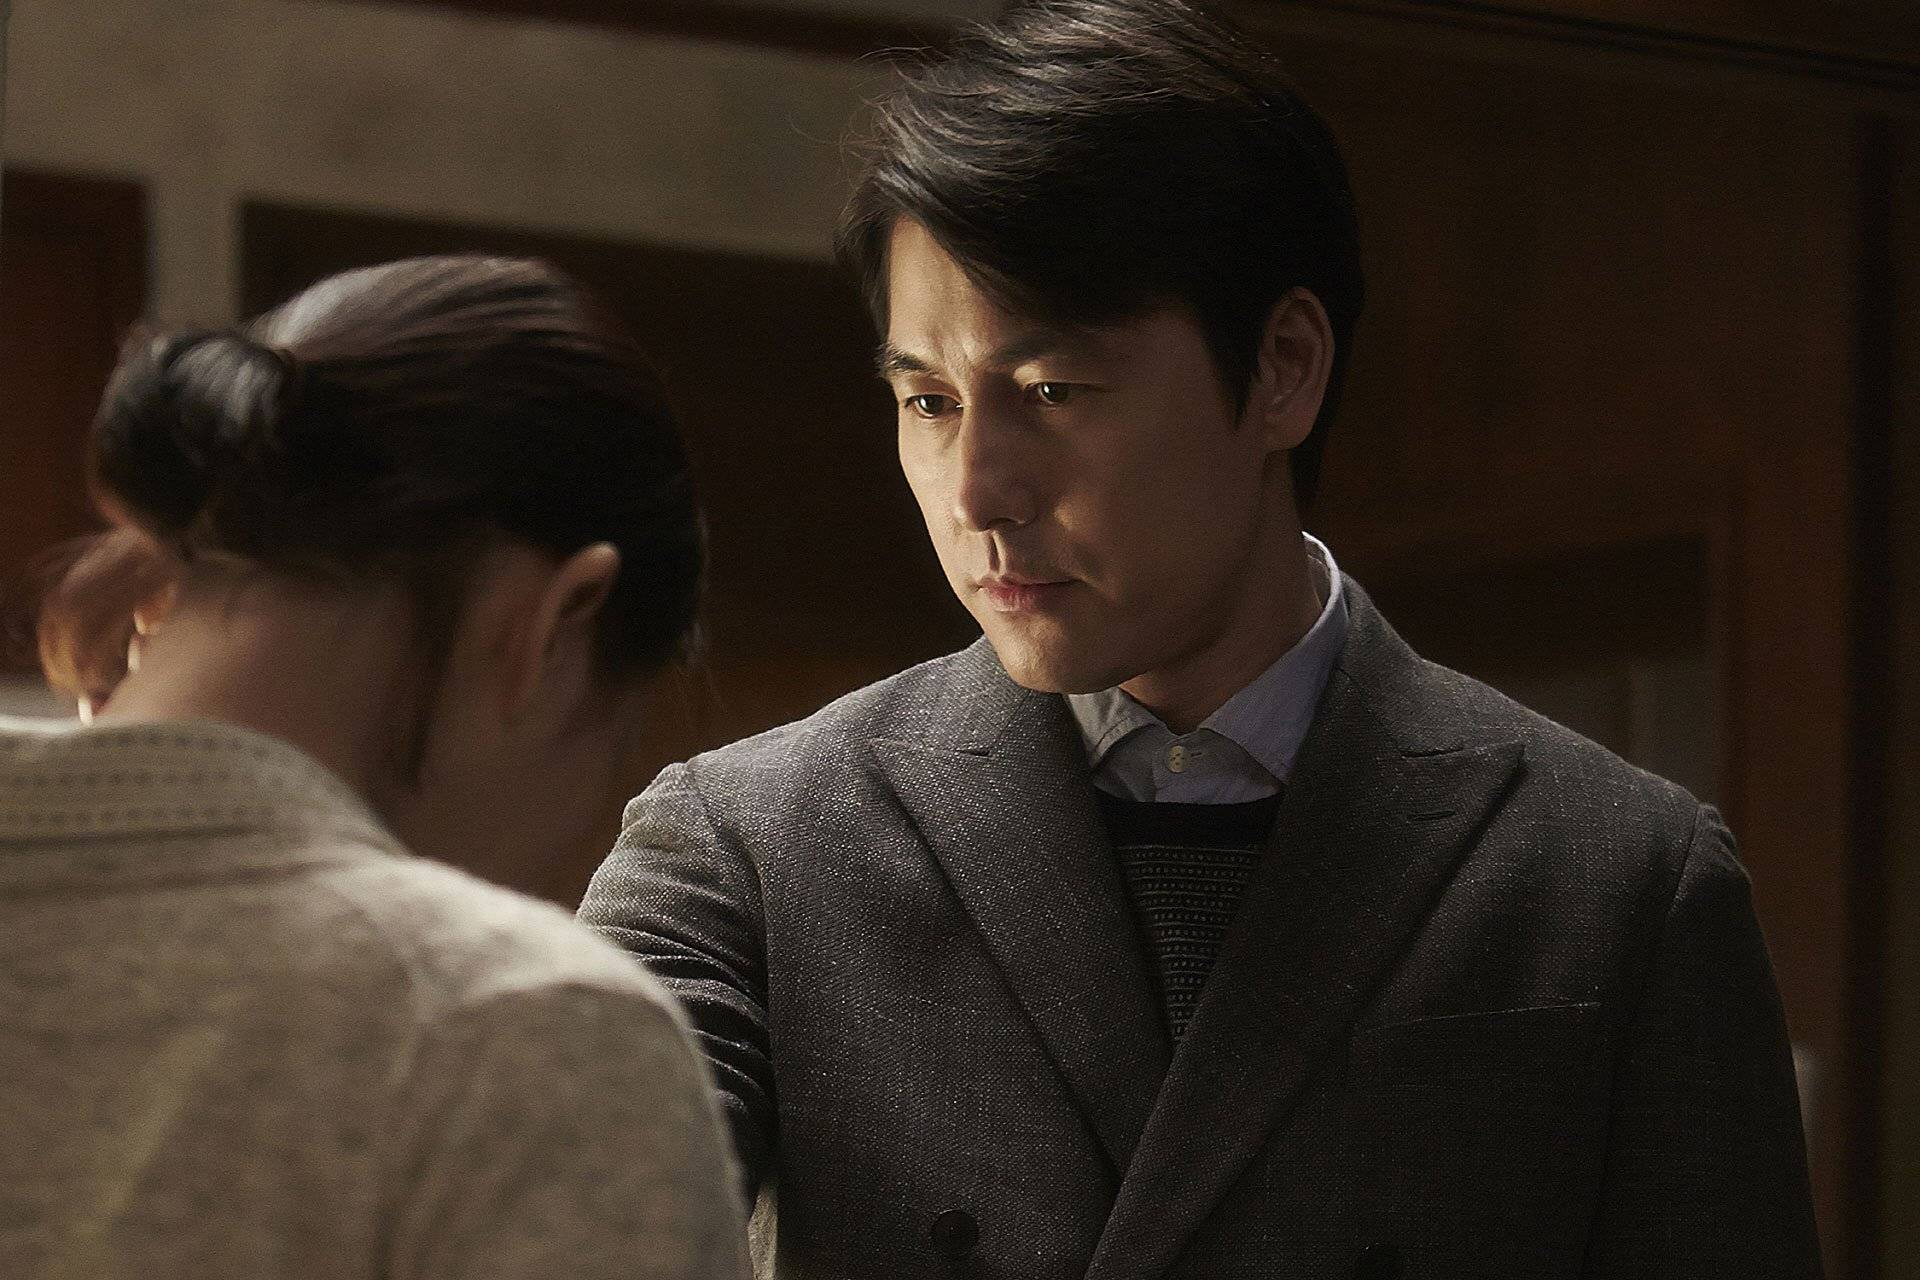 Watch Scarlet Innocence Full Movie on FMovies.to